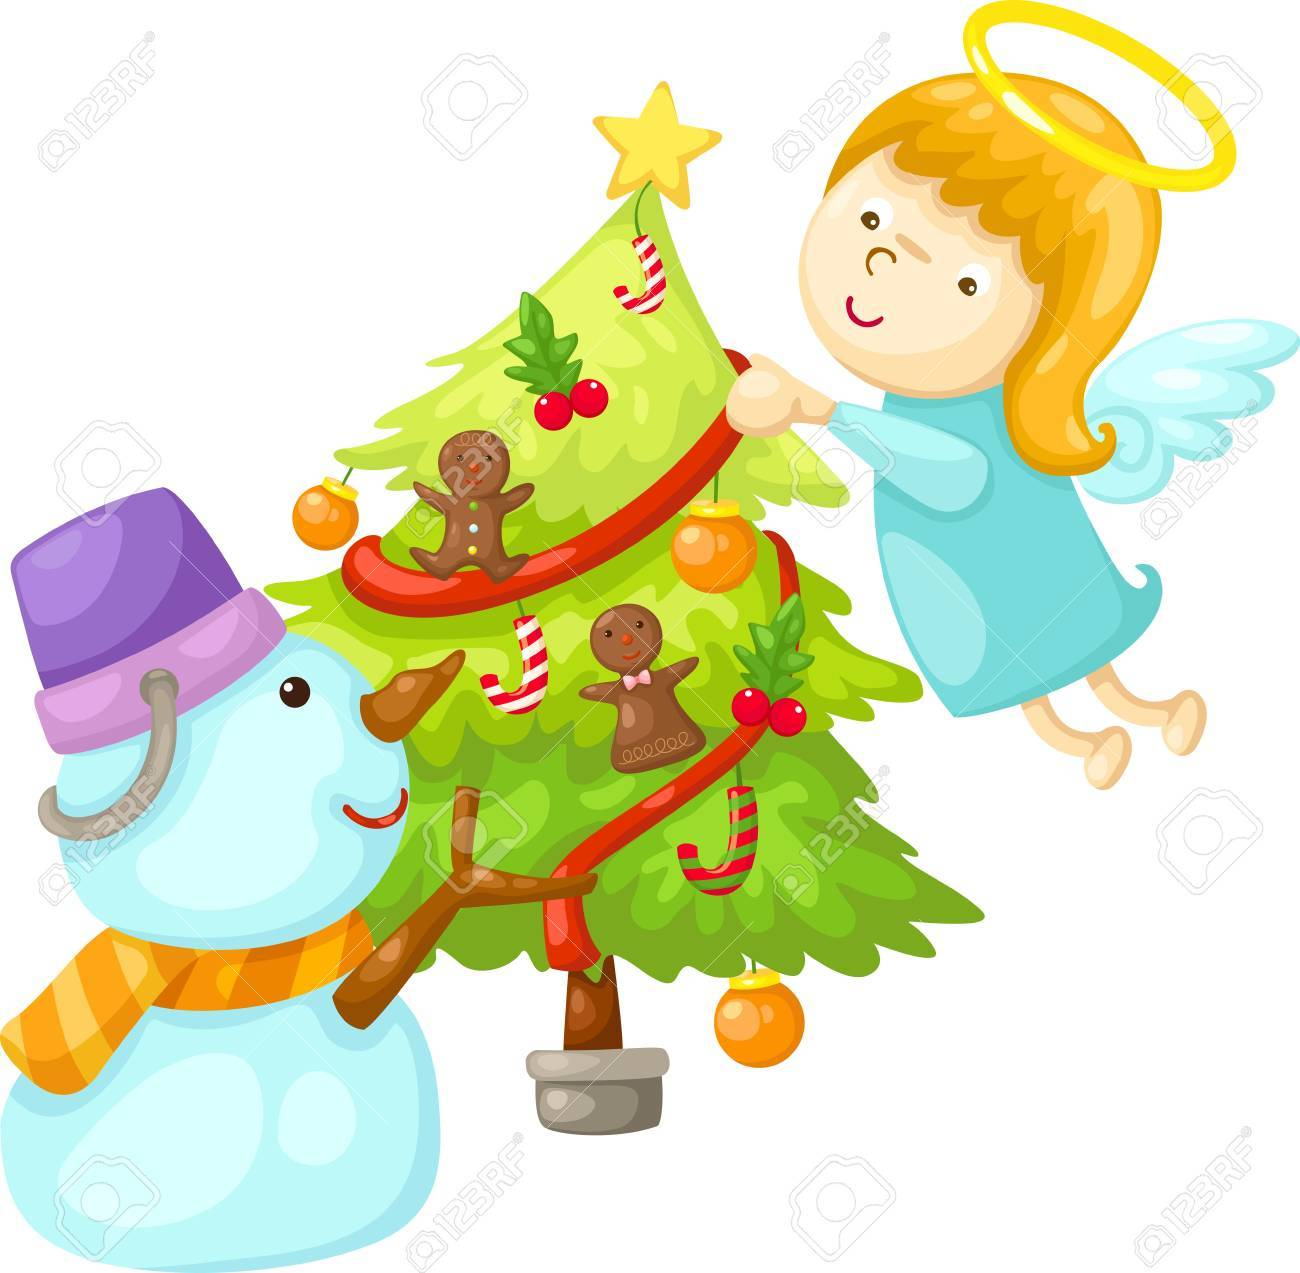 snowman with angel tree christmas  Vector illustration  on white background Stock Vector - 17623497